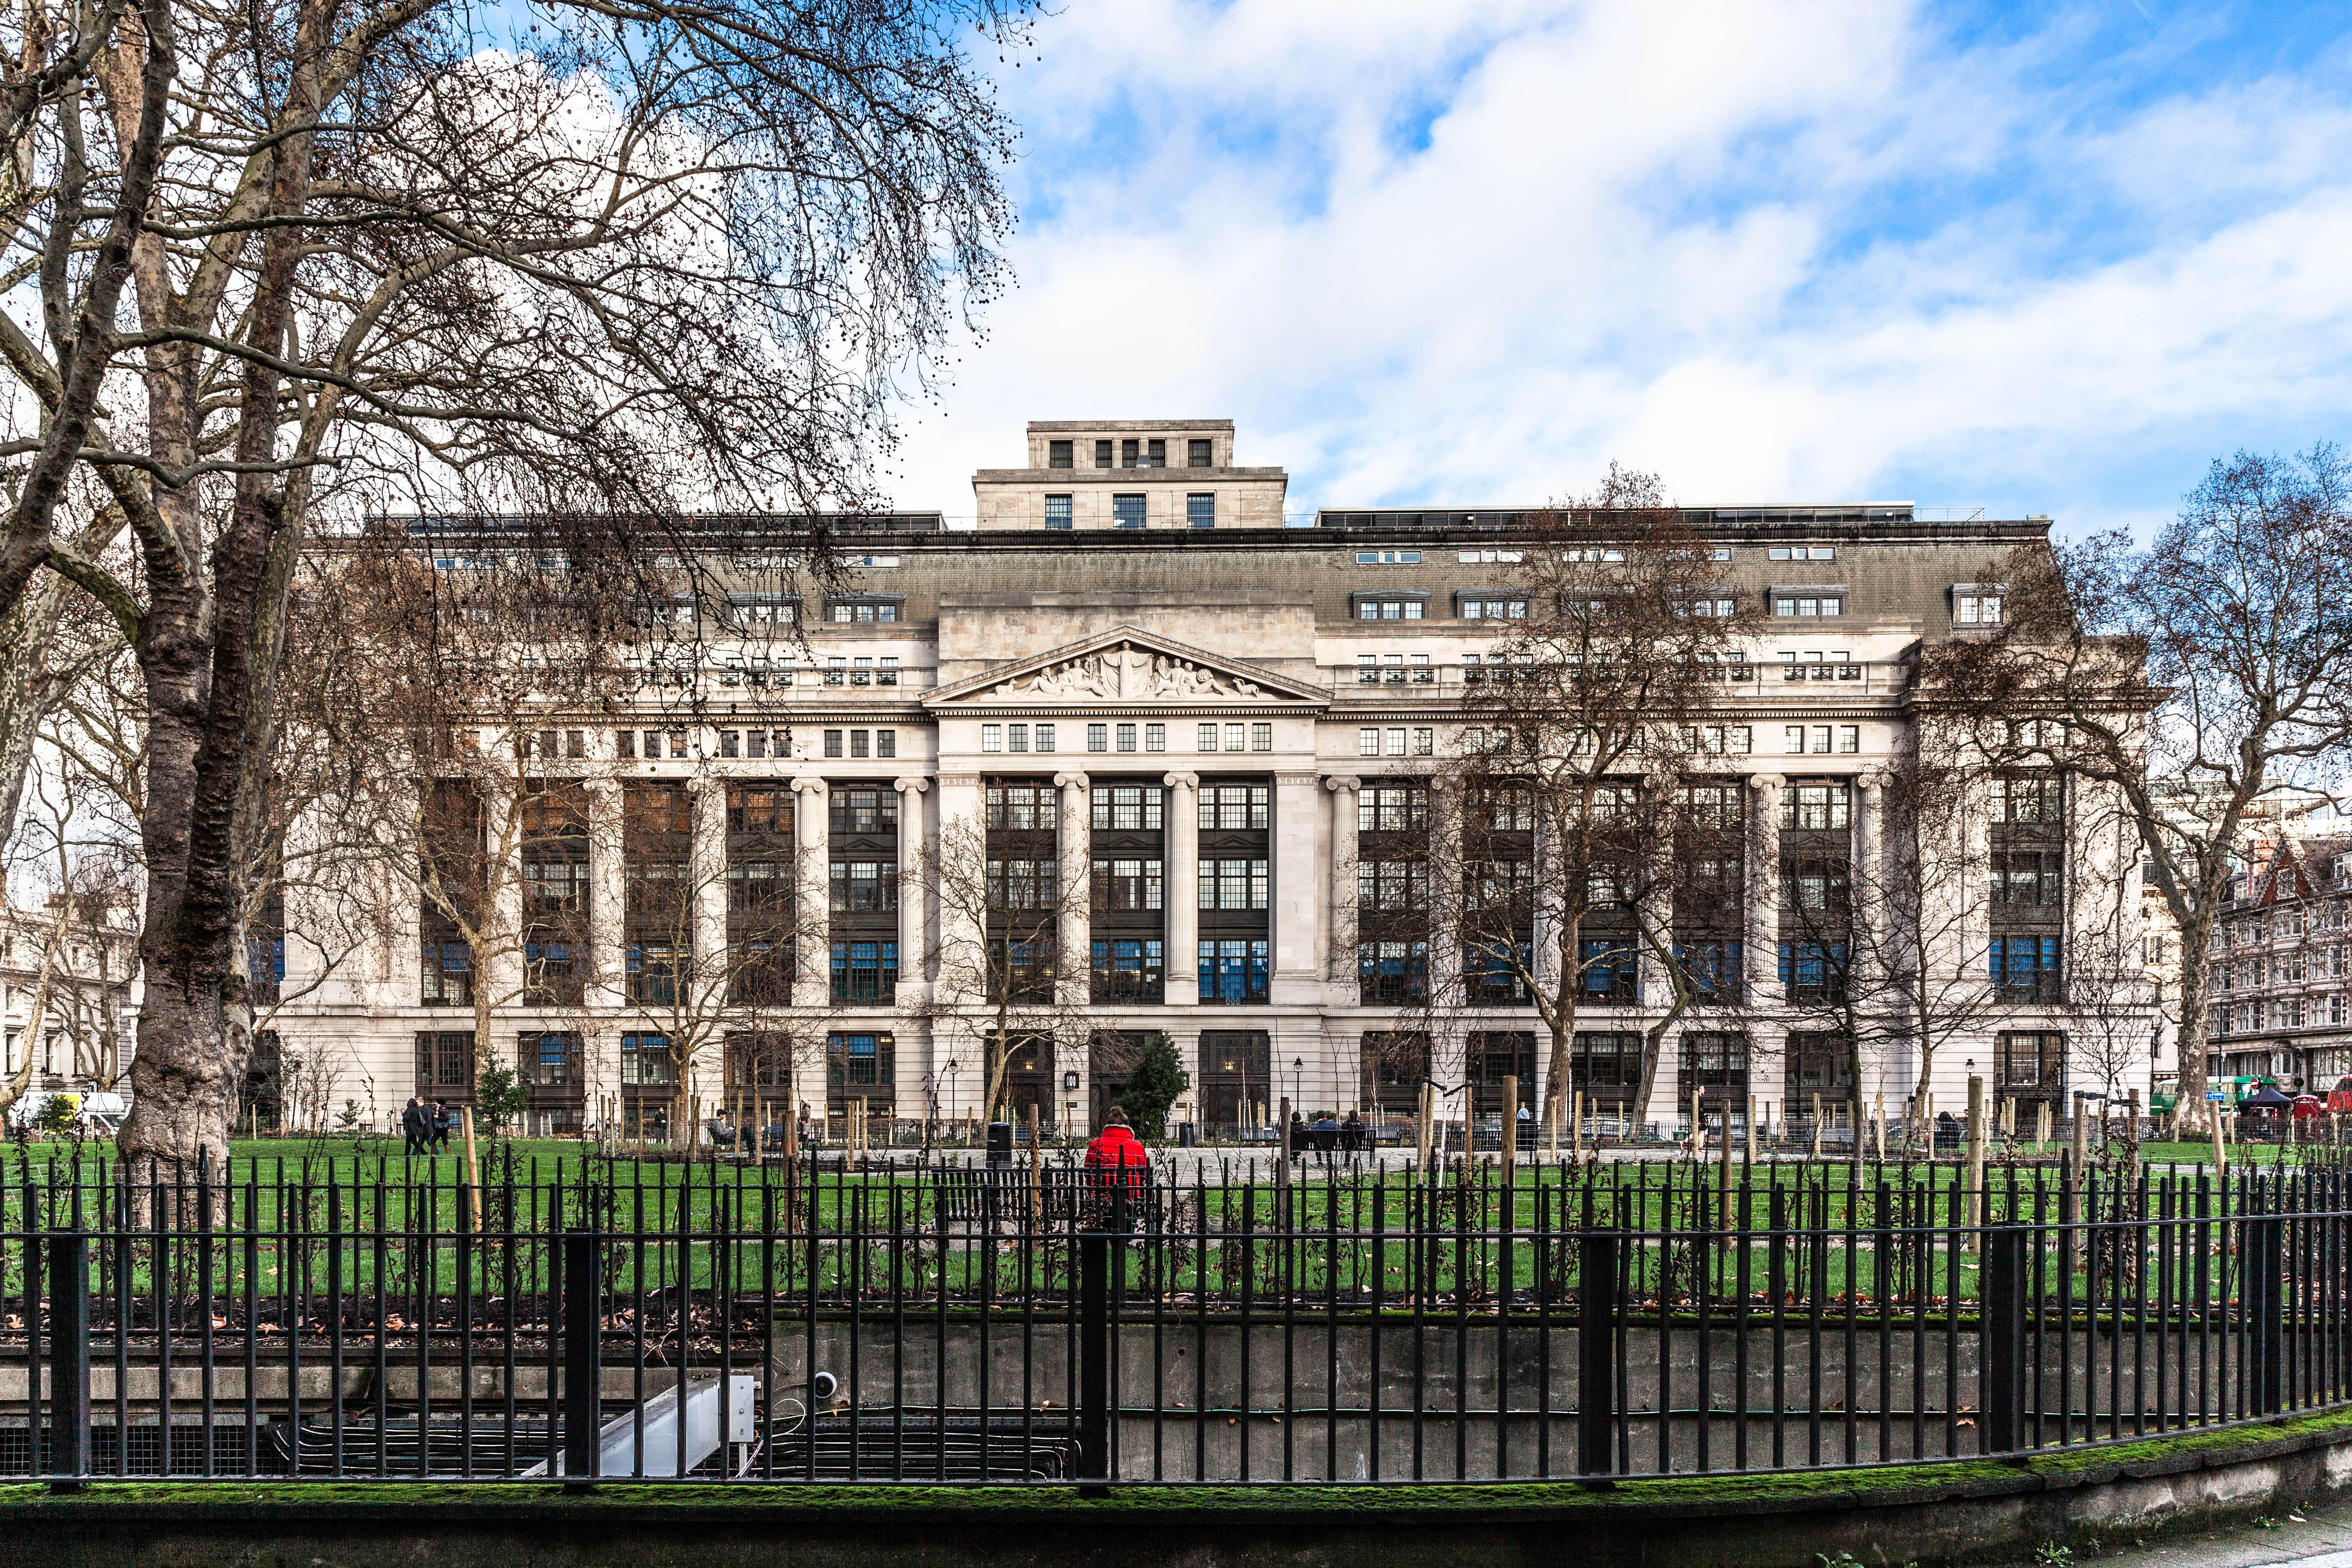 Labtech buys Grade II-listed Holborn building for £300m